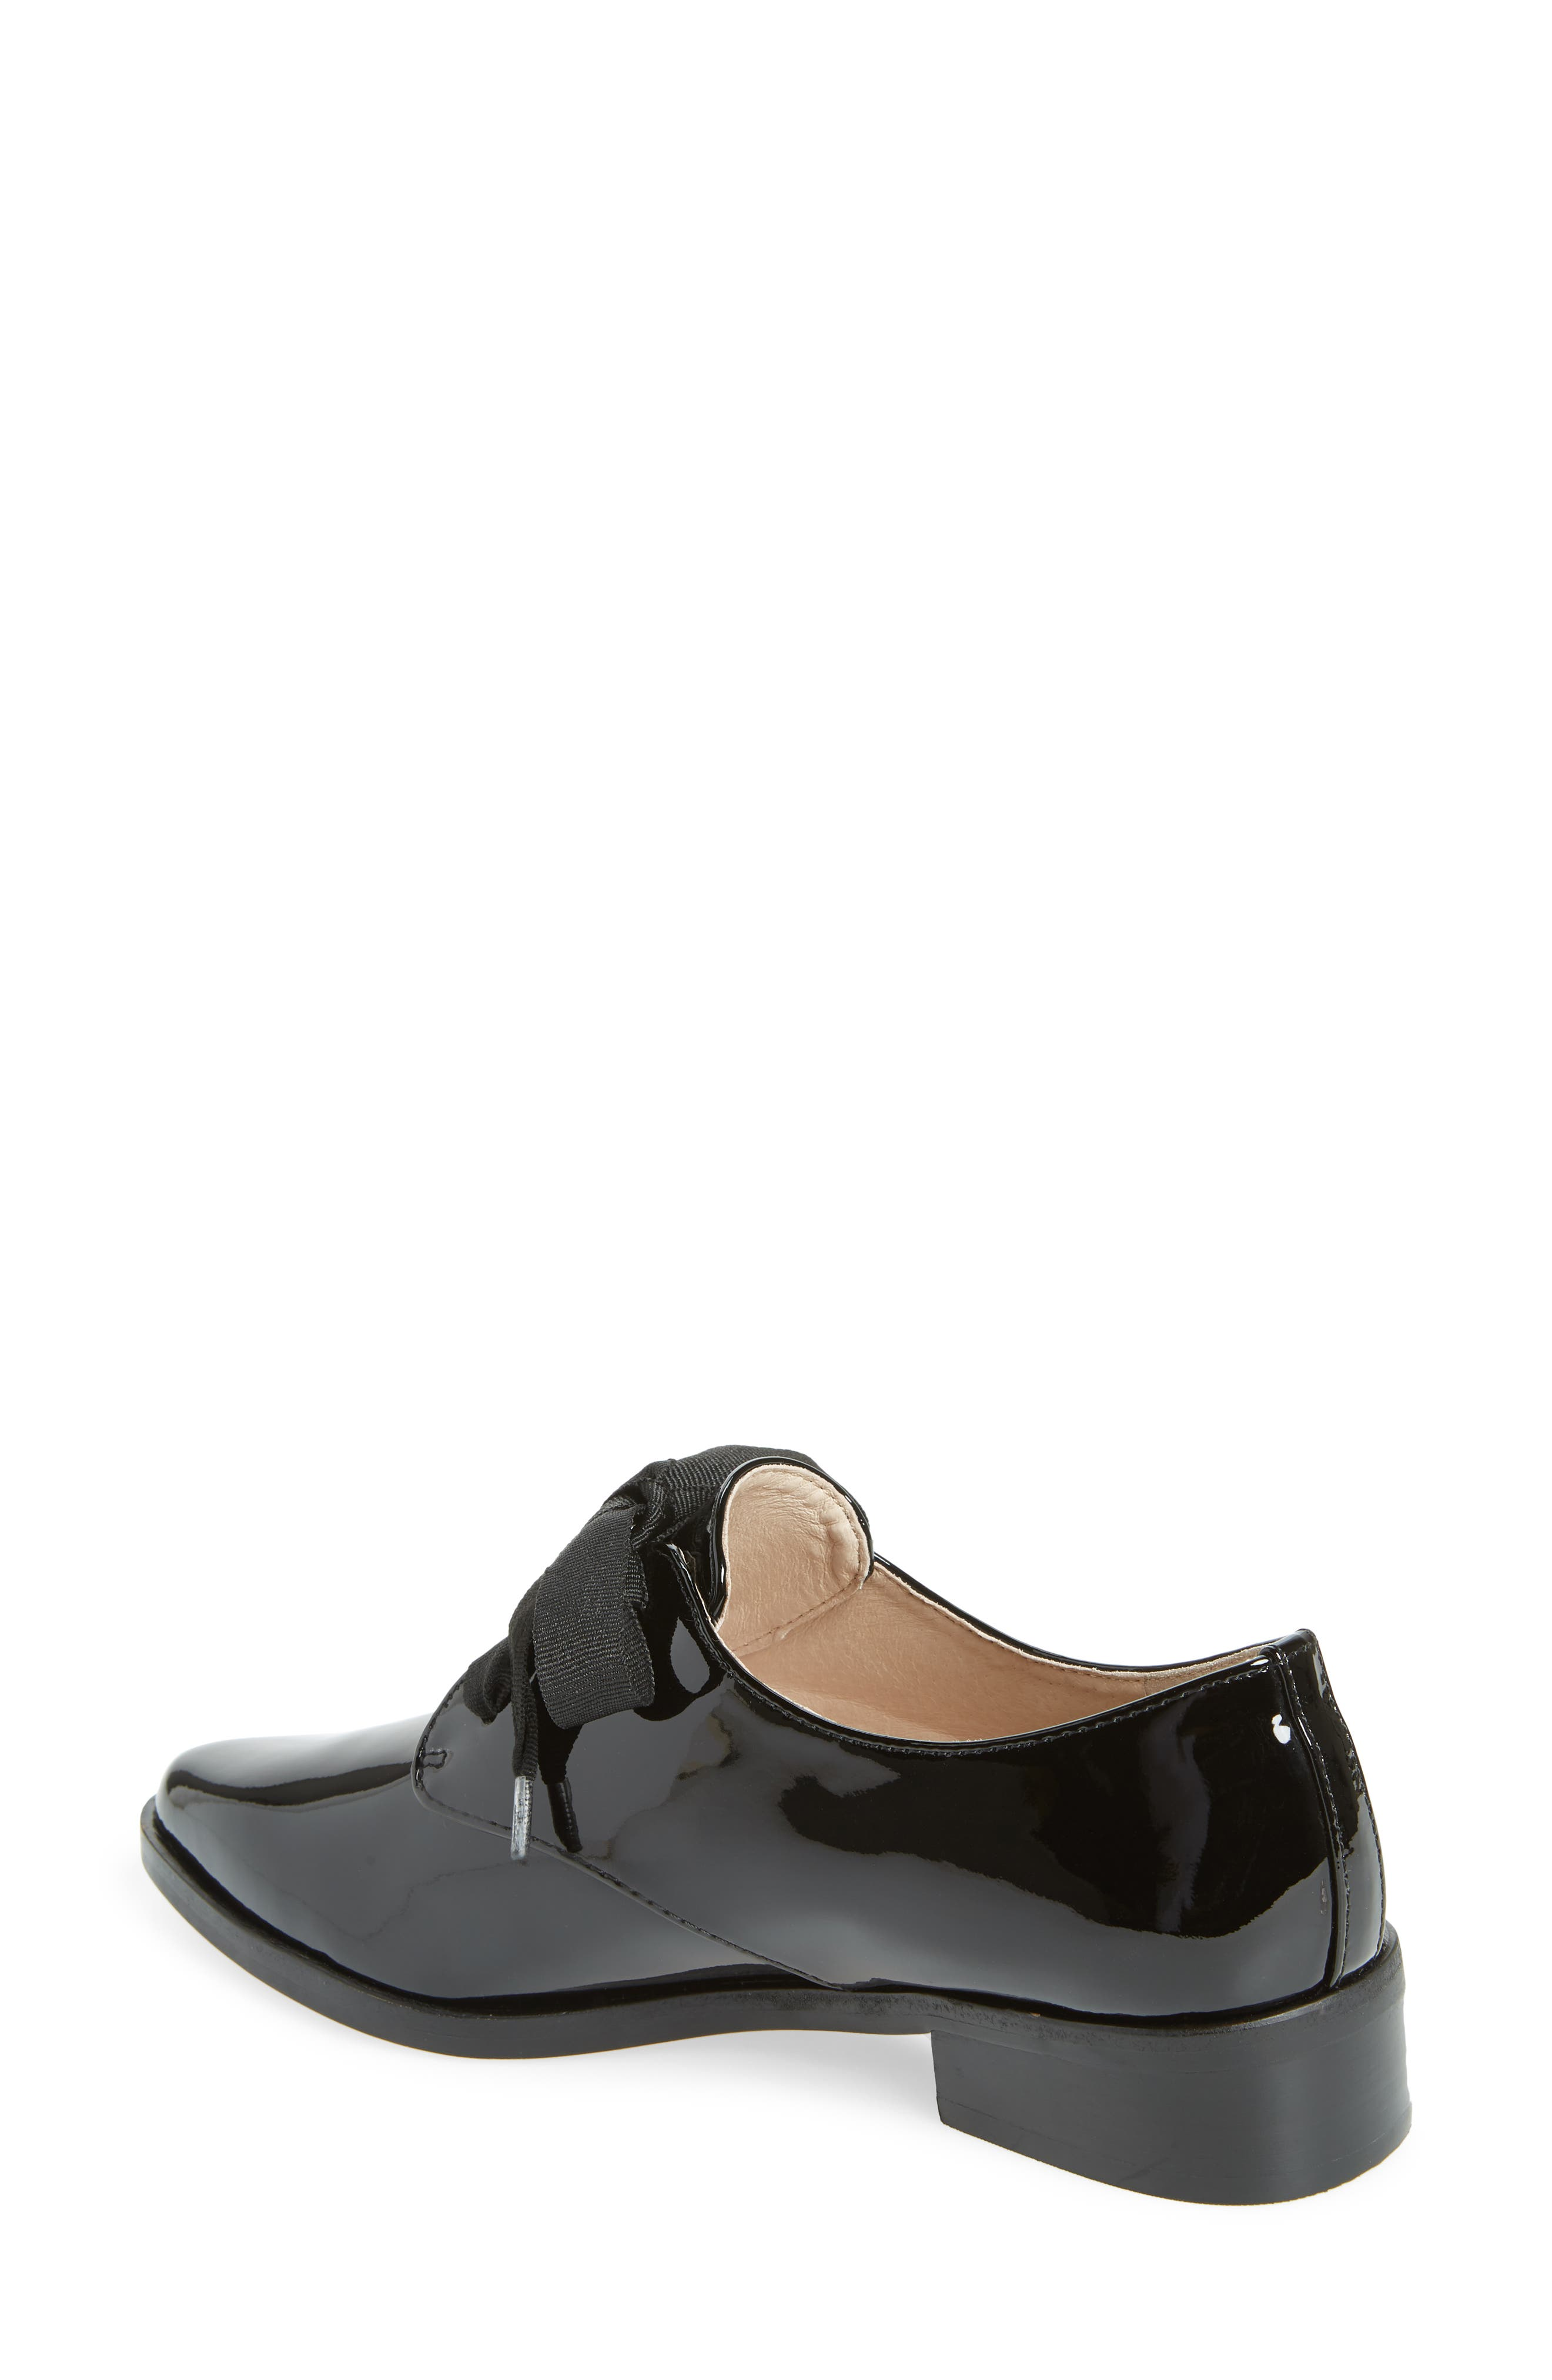 Louise Et Cie Shoes For Women Nordstrom D Island Casual Zappato England Suede Black